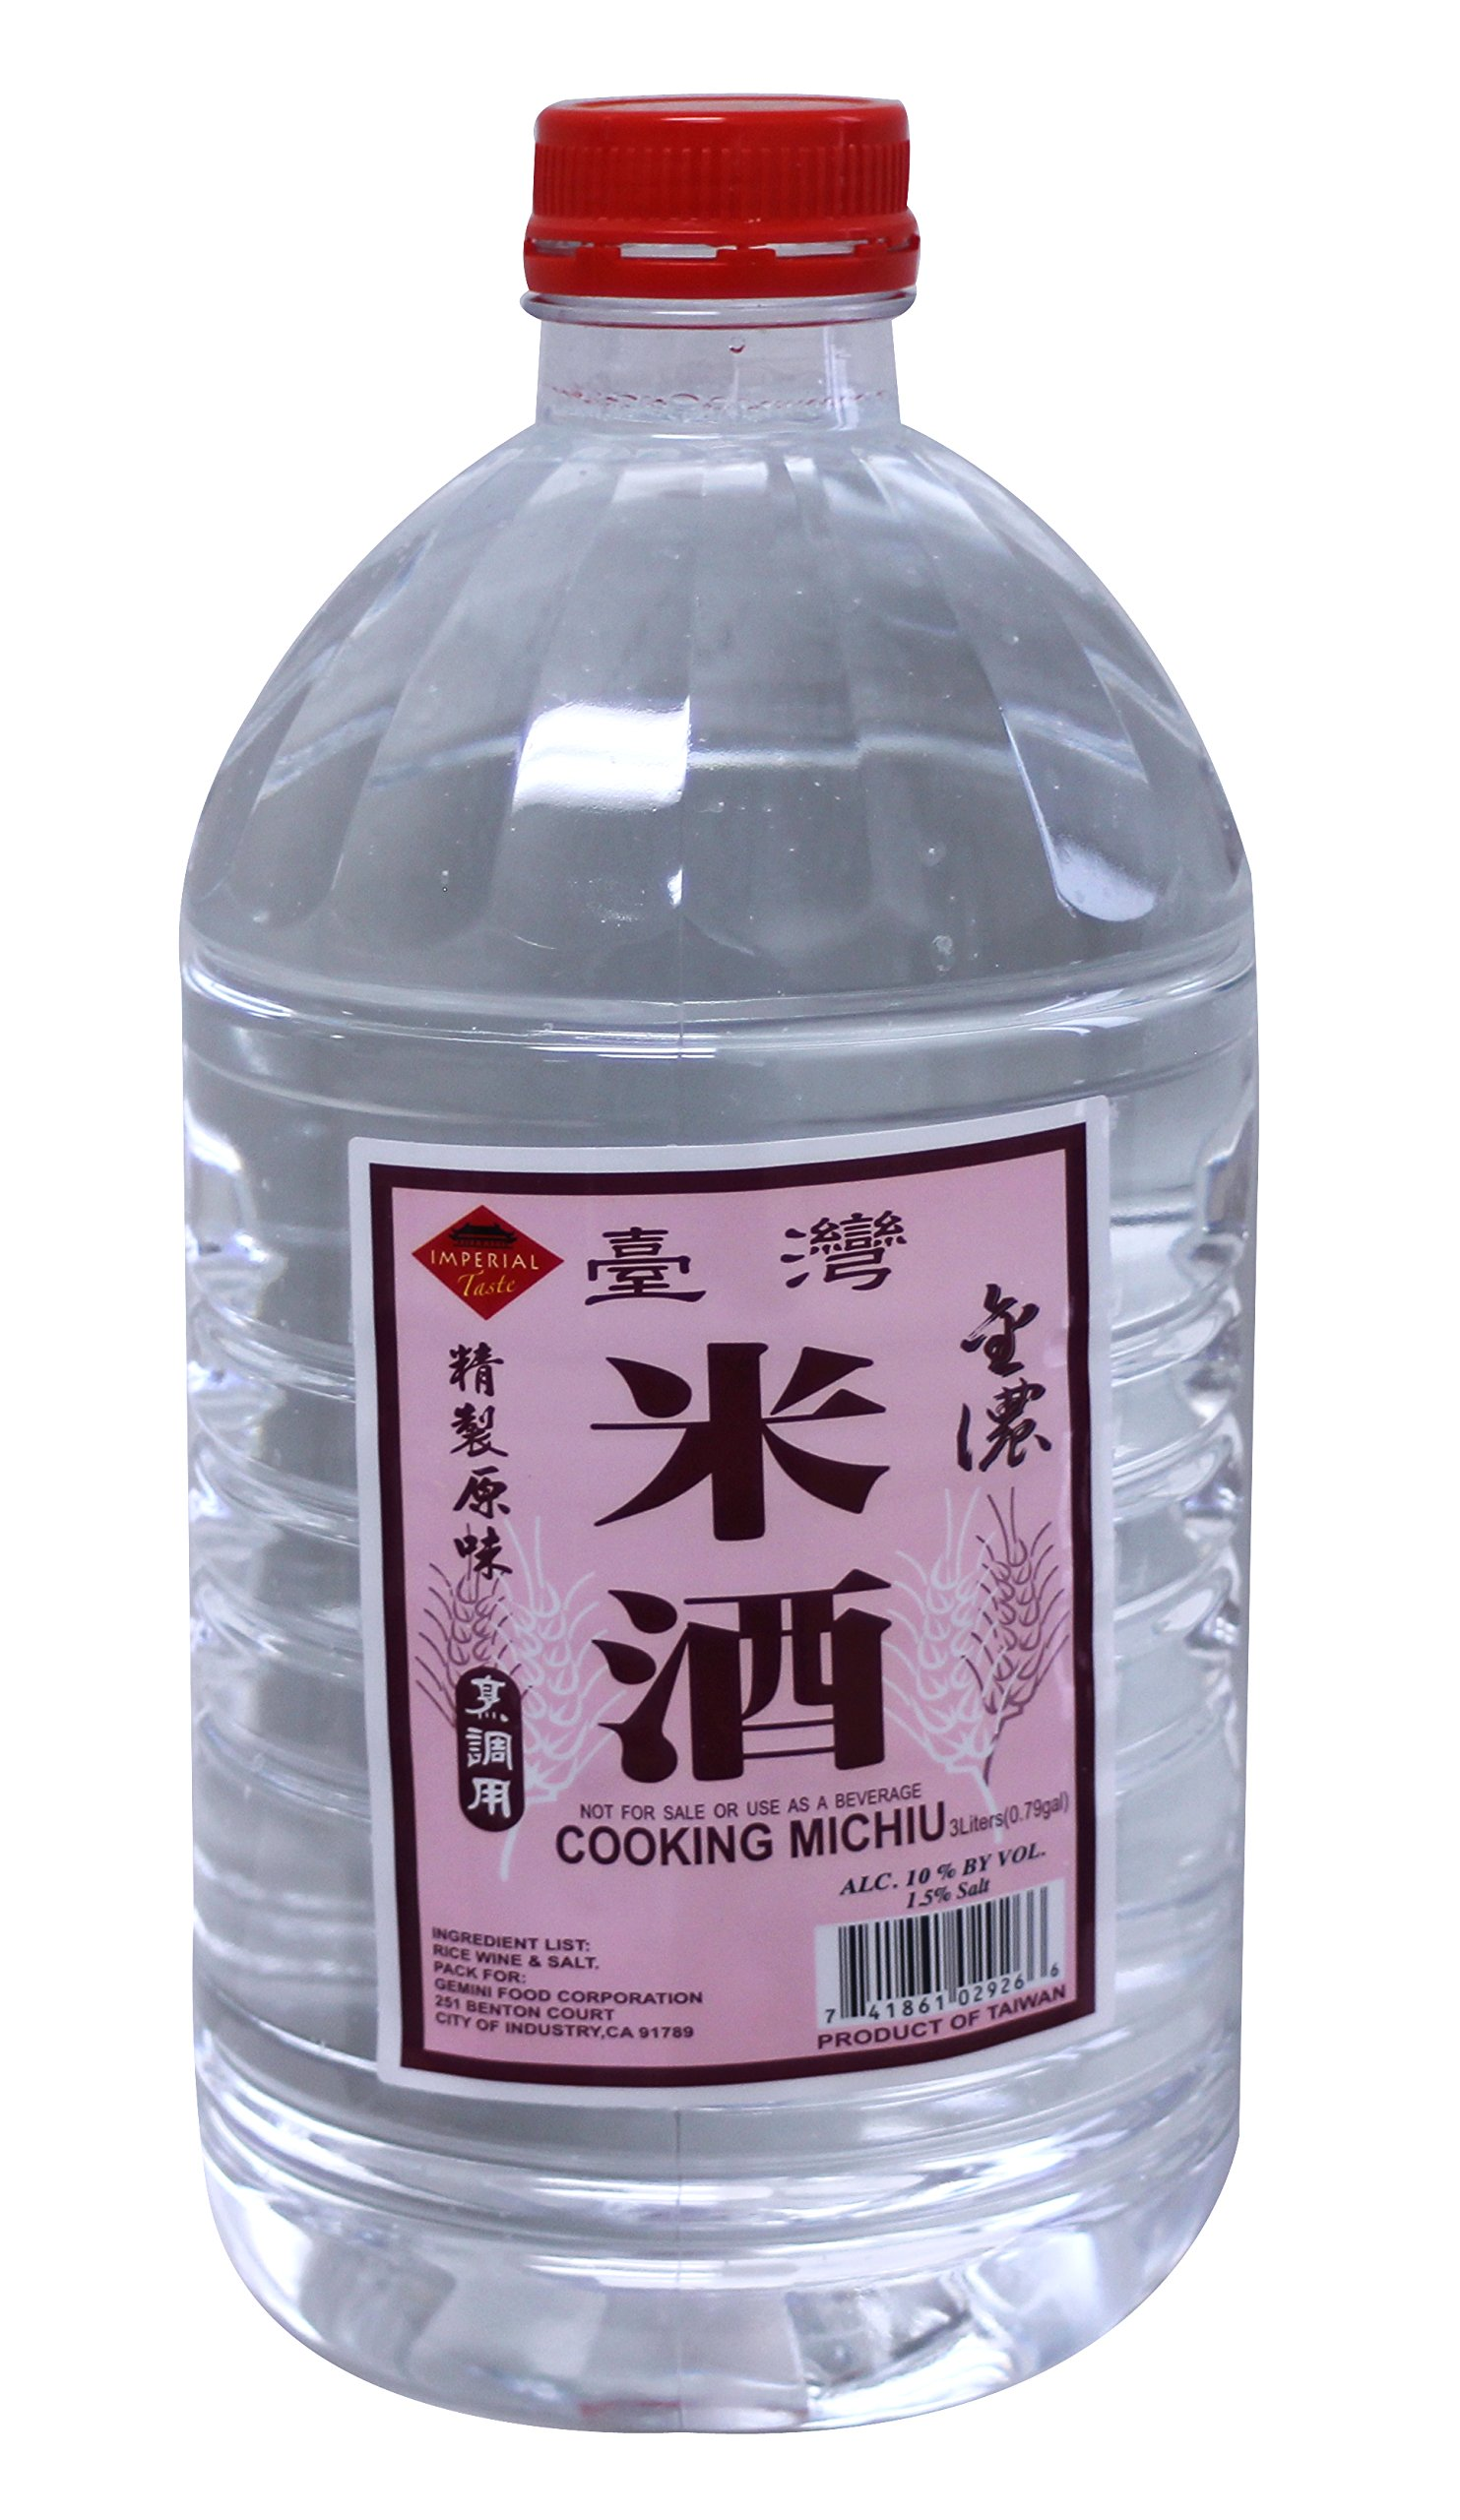 台灣米酒 Rice cooking wine michiu - 3 liter